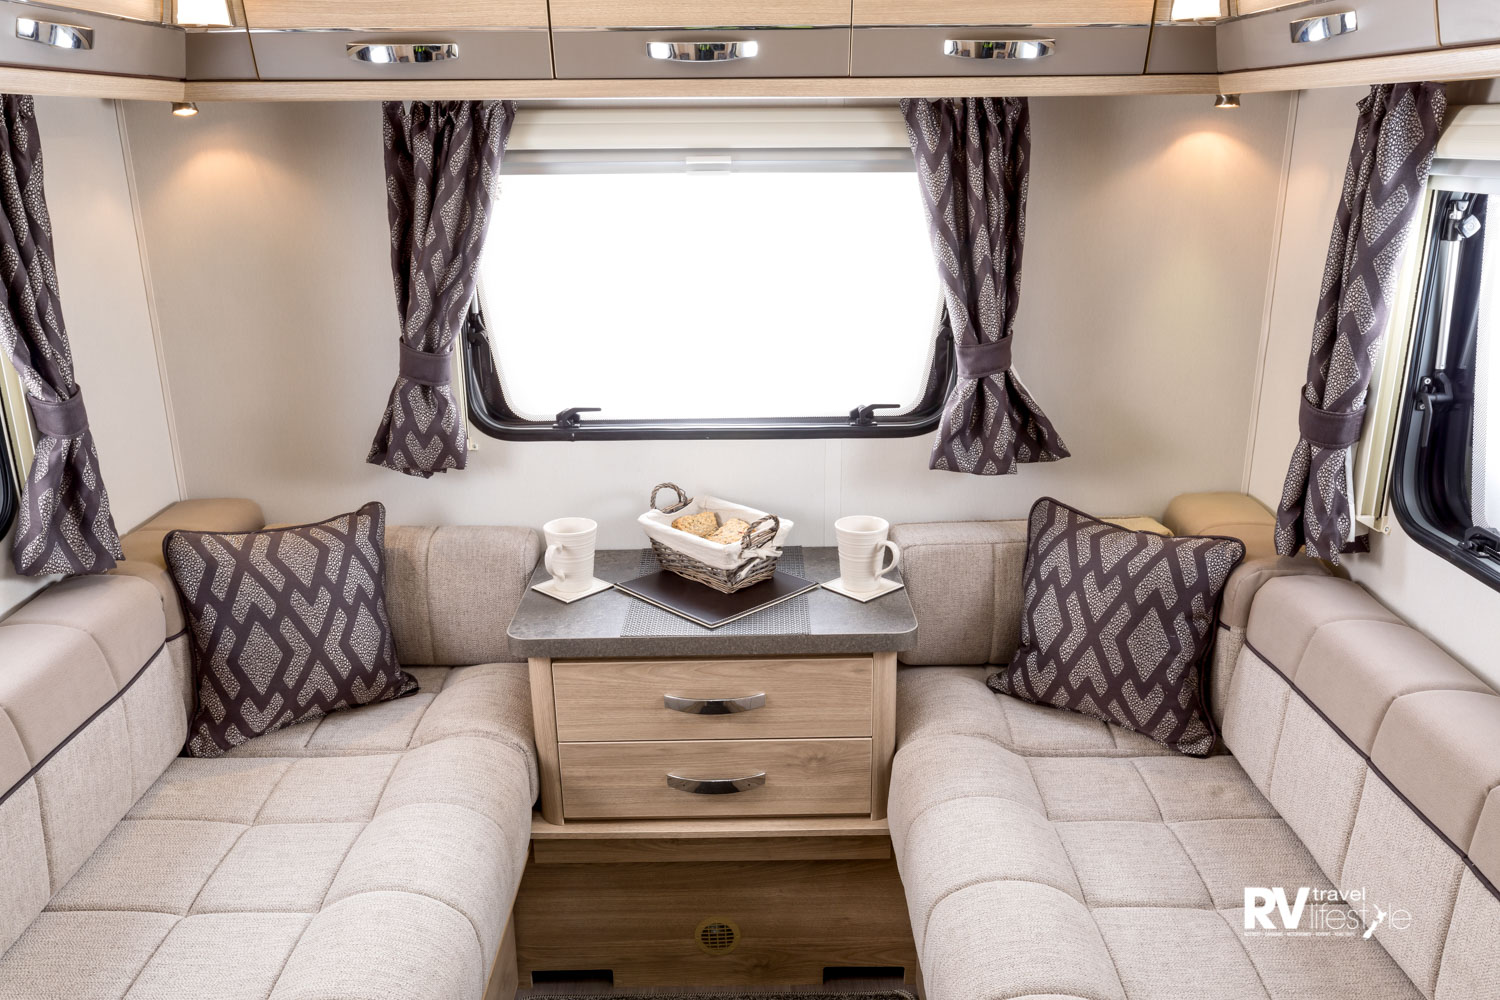 Elddis vehicles are beautifully upholstered, ensuring a comfortable lounge conversion from day to night mode